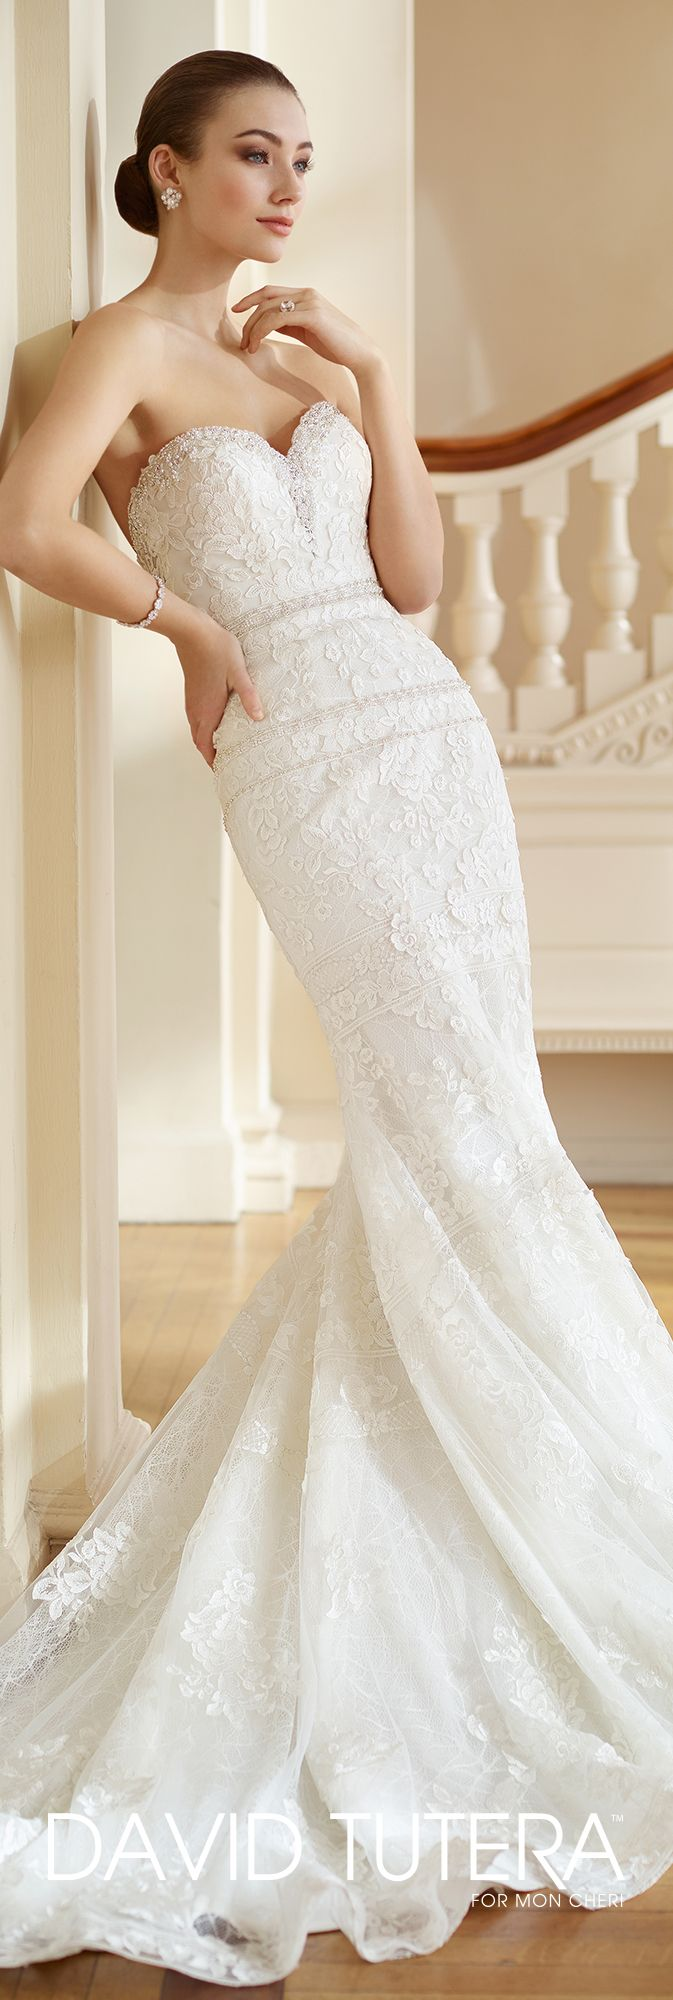 725 best david tutera for mon cheri images on pinterest for No back wedding dress